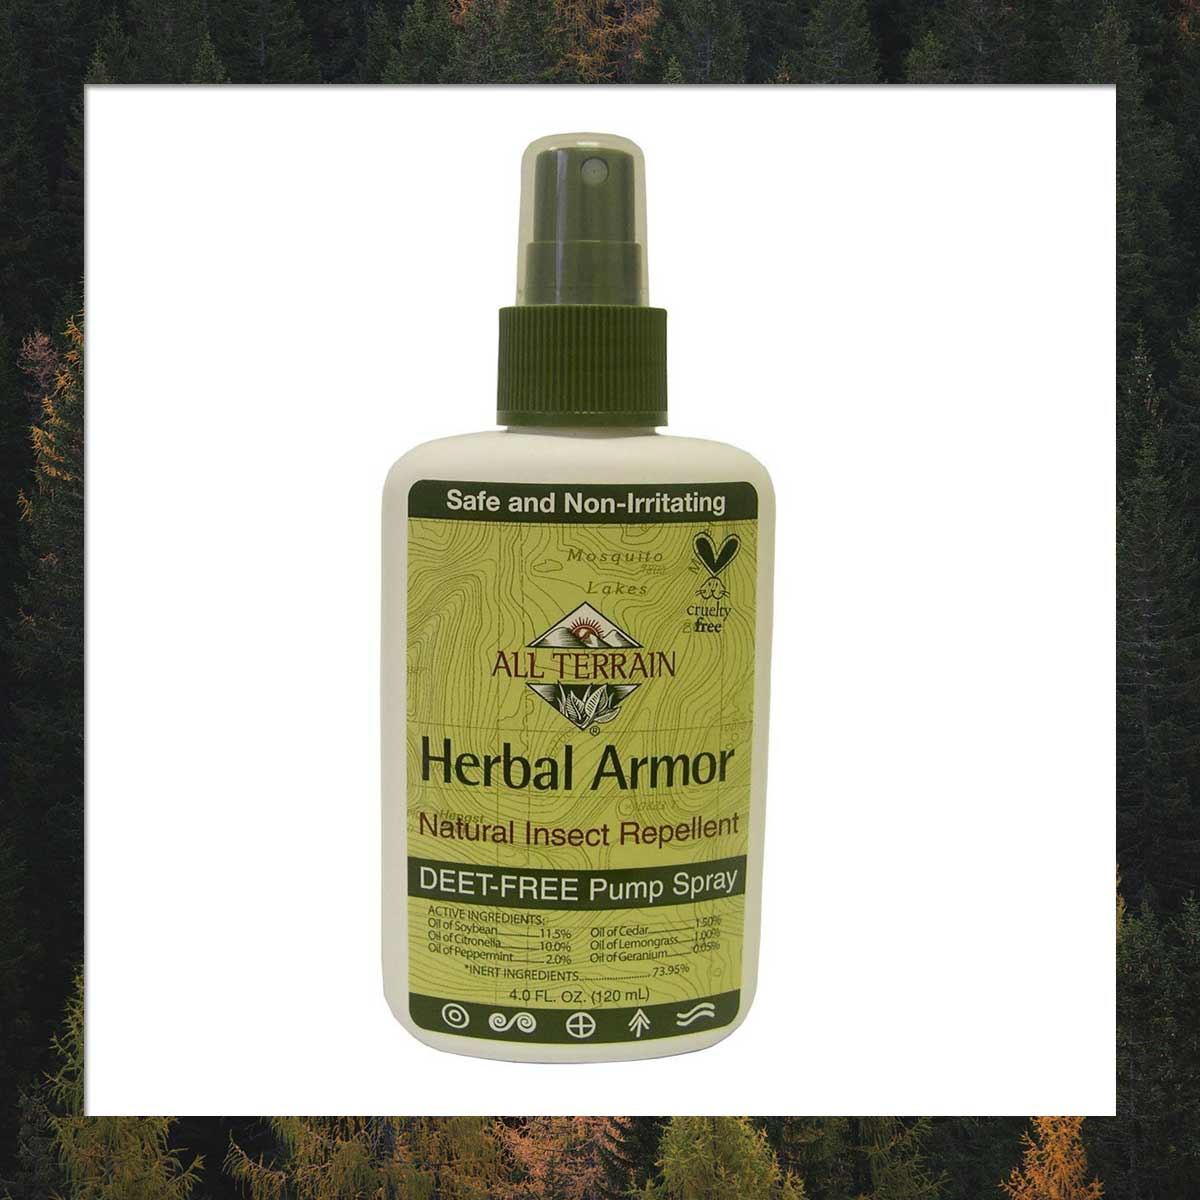 A spray bottle of All Terrain Herbal Armor Natural Insect Repellent bug spray